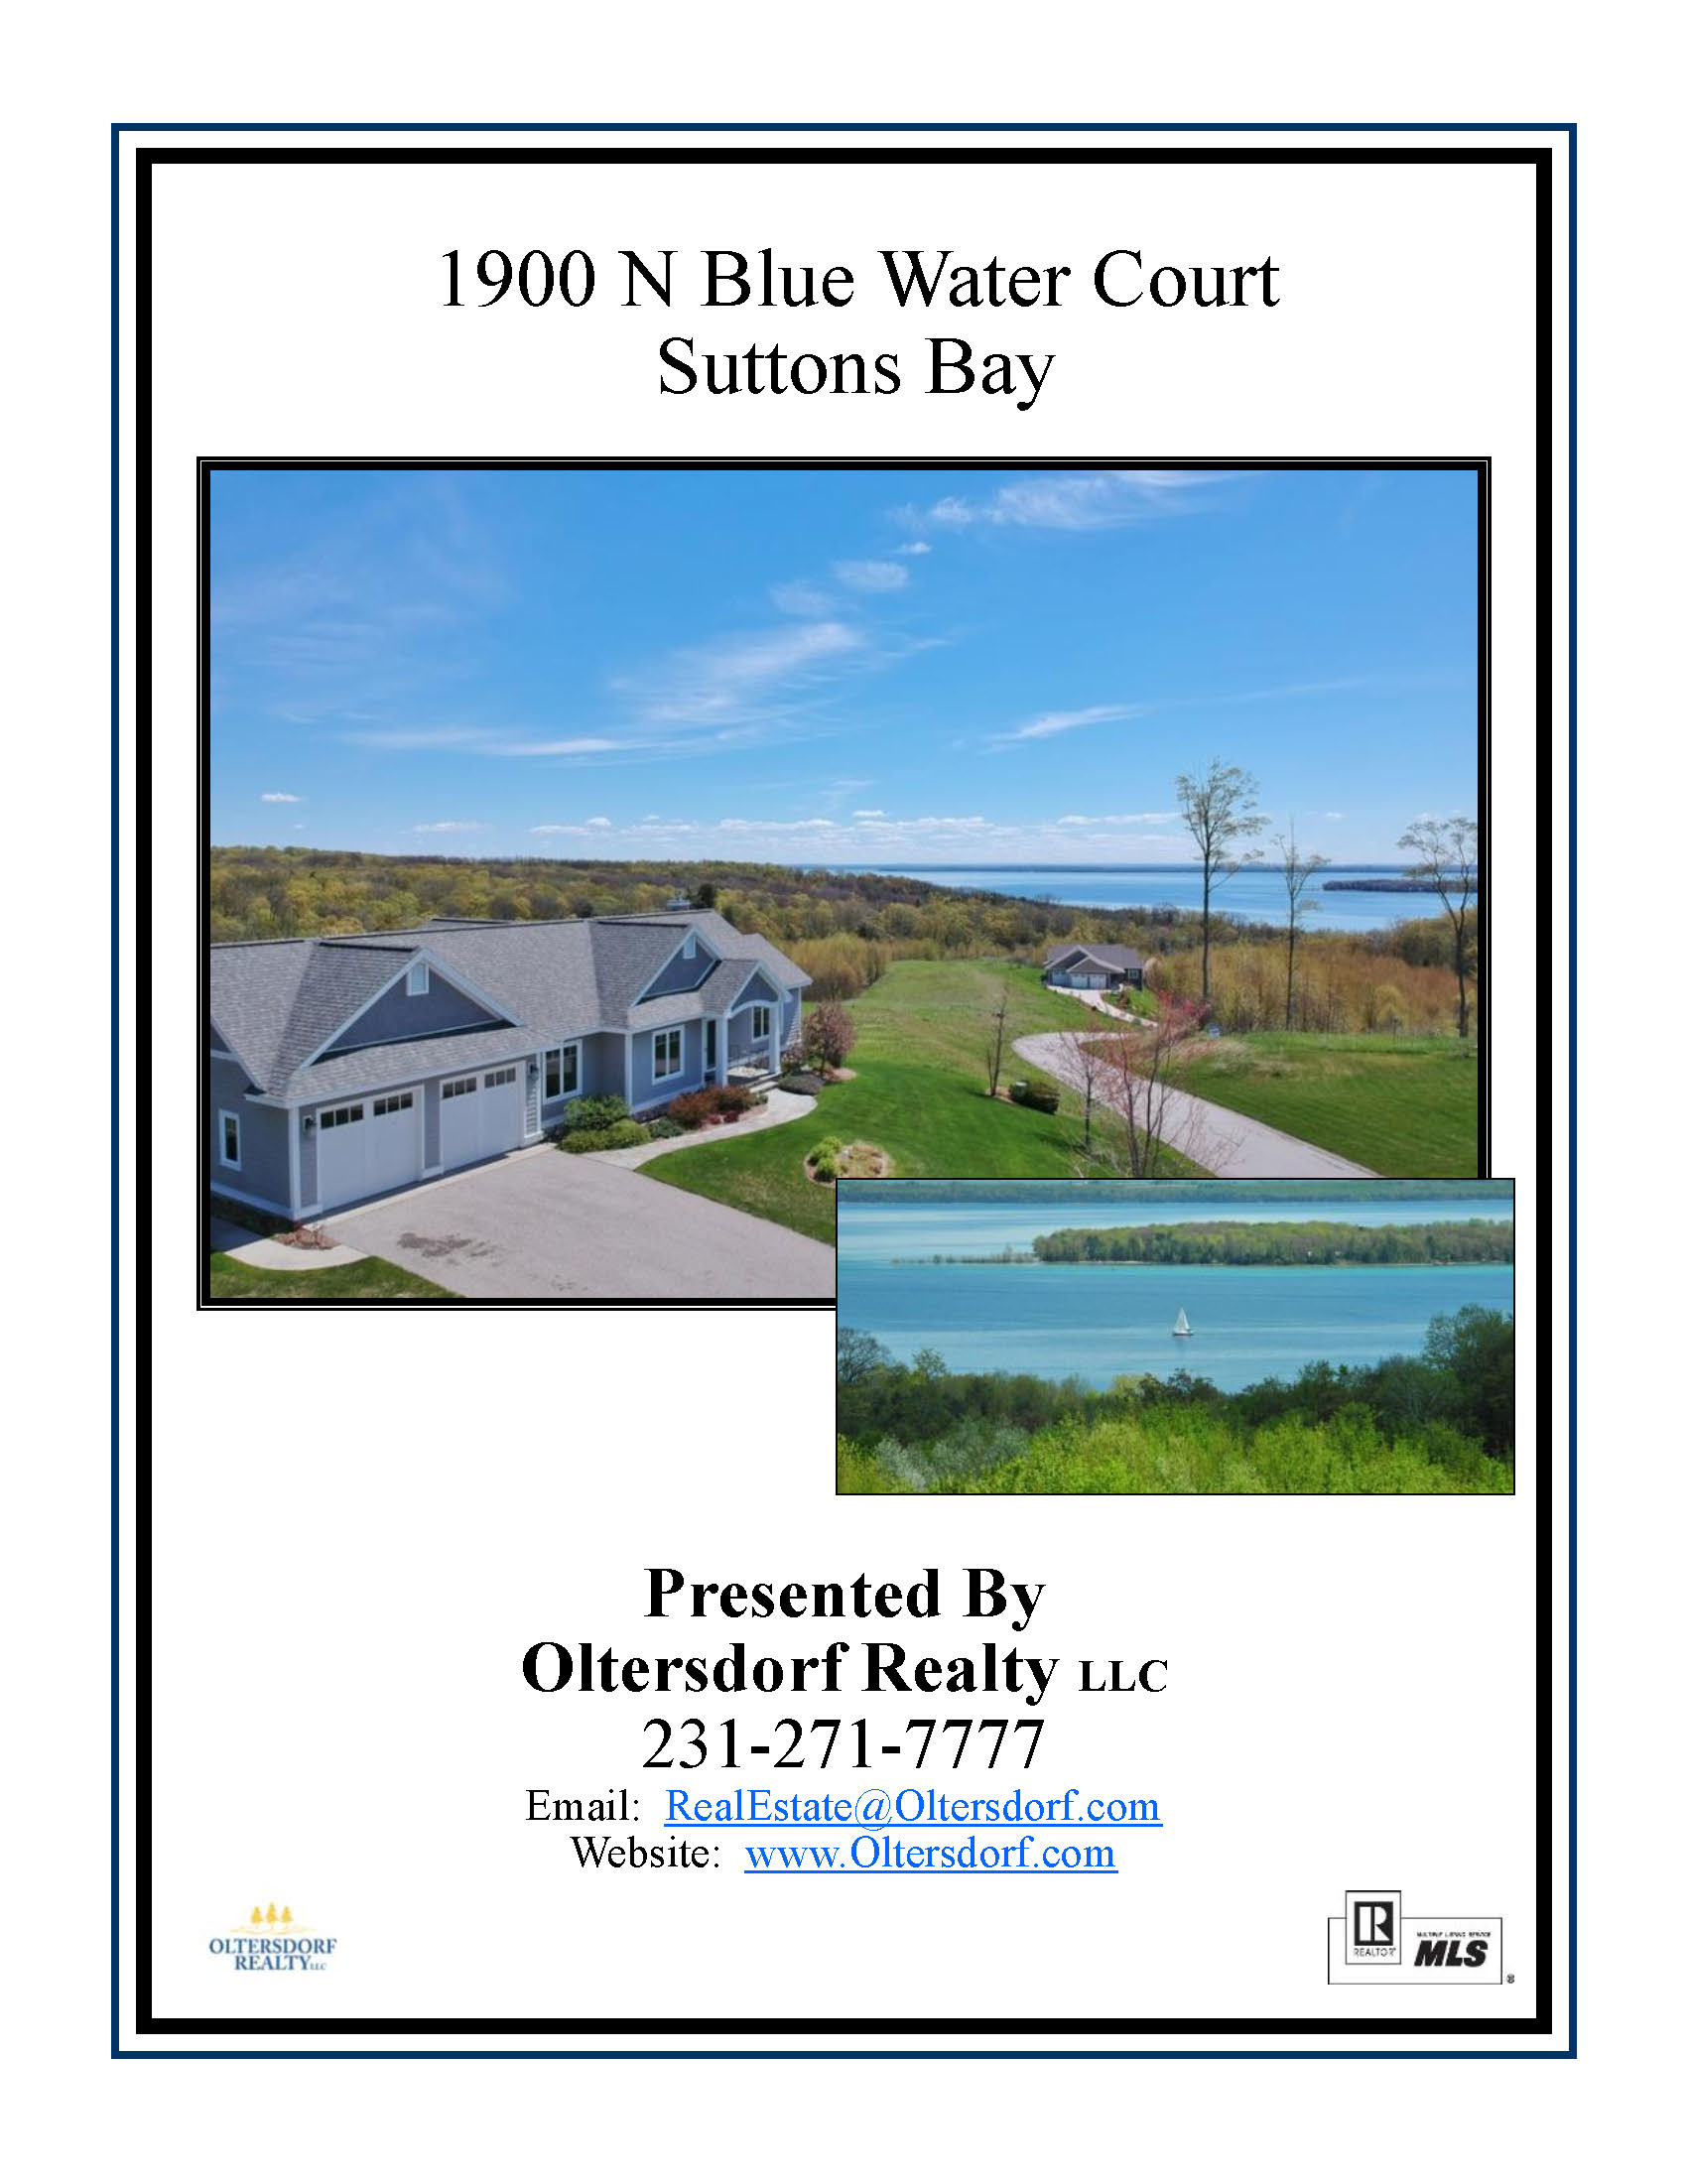 1900 N Blue Water Ct, Suttons Bay, MI – Ranch Home & Water Views - Marketing PAcket by Oltersdorf Realty LLC (1).jpg